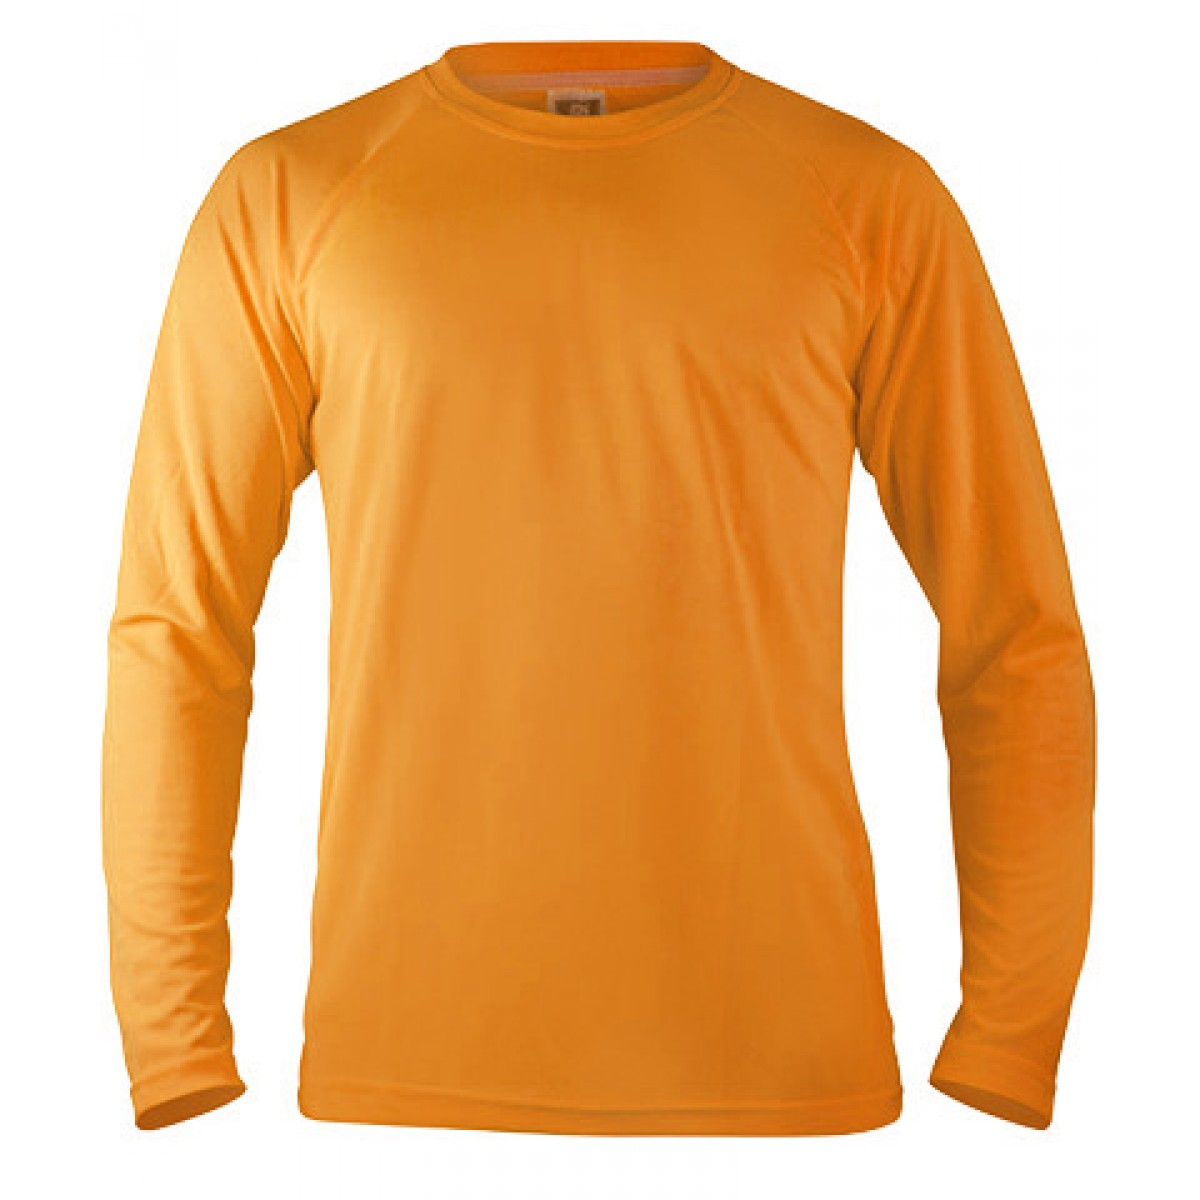 Long Sleeve Mesh Performance T-shirt-Neon Orange -YL